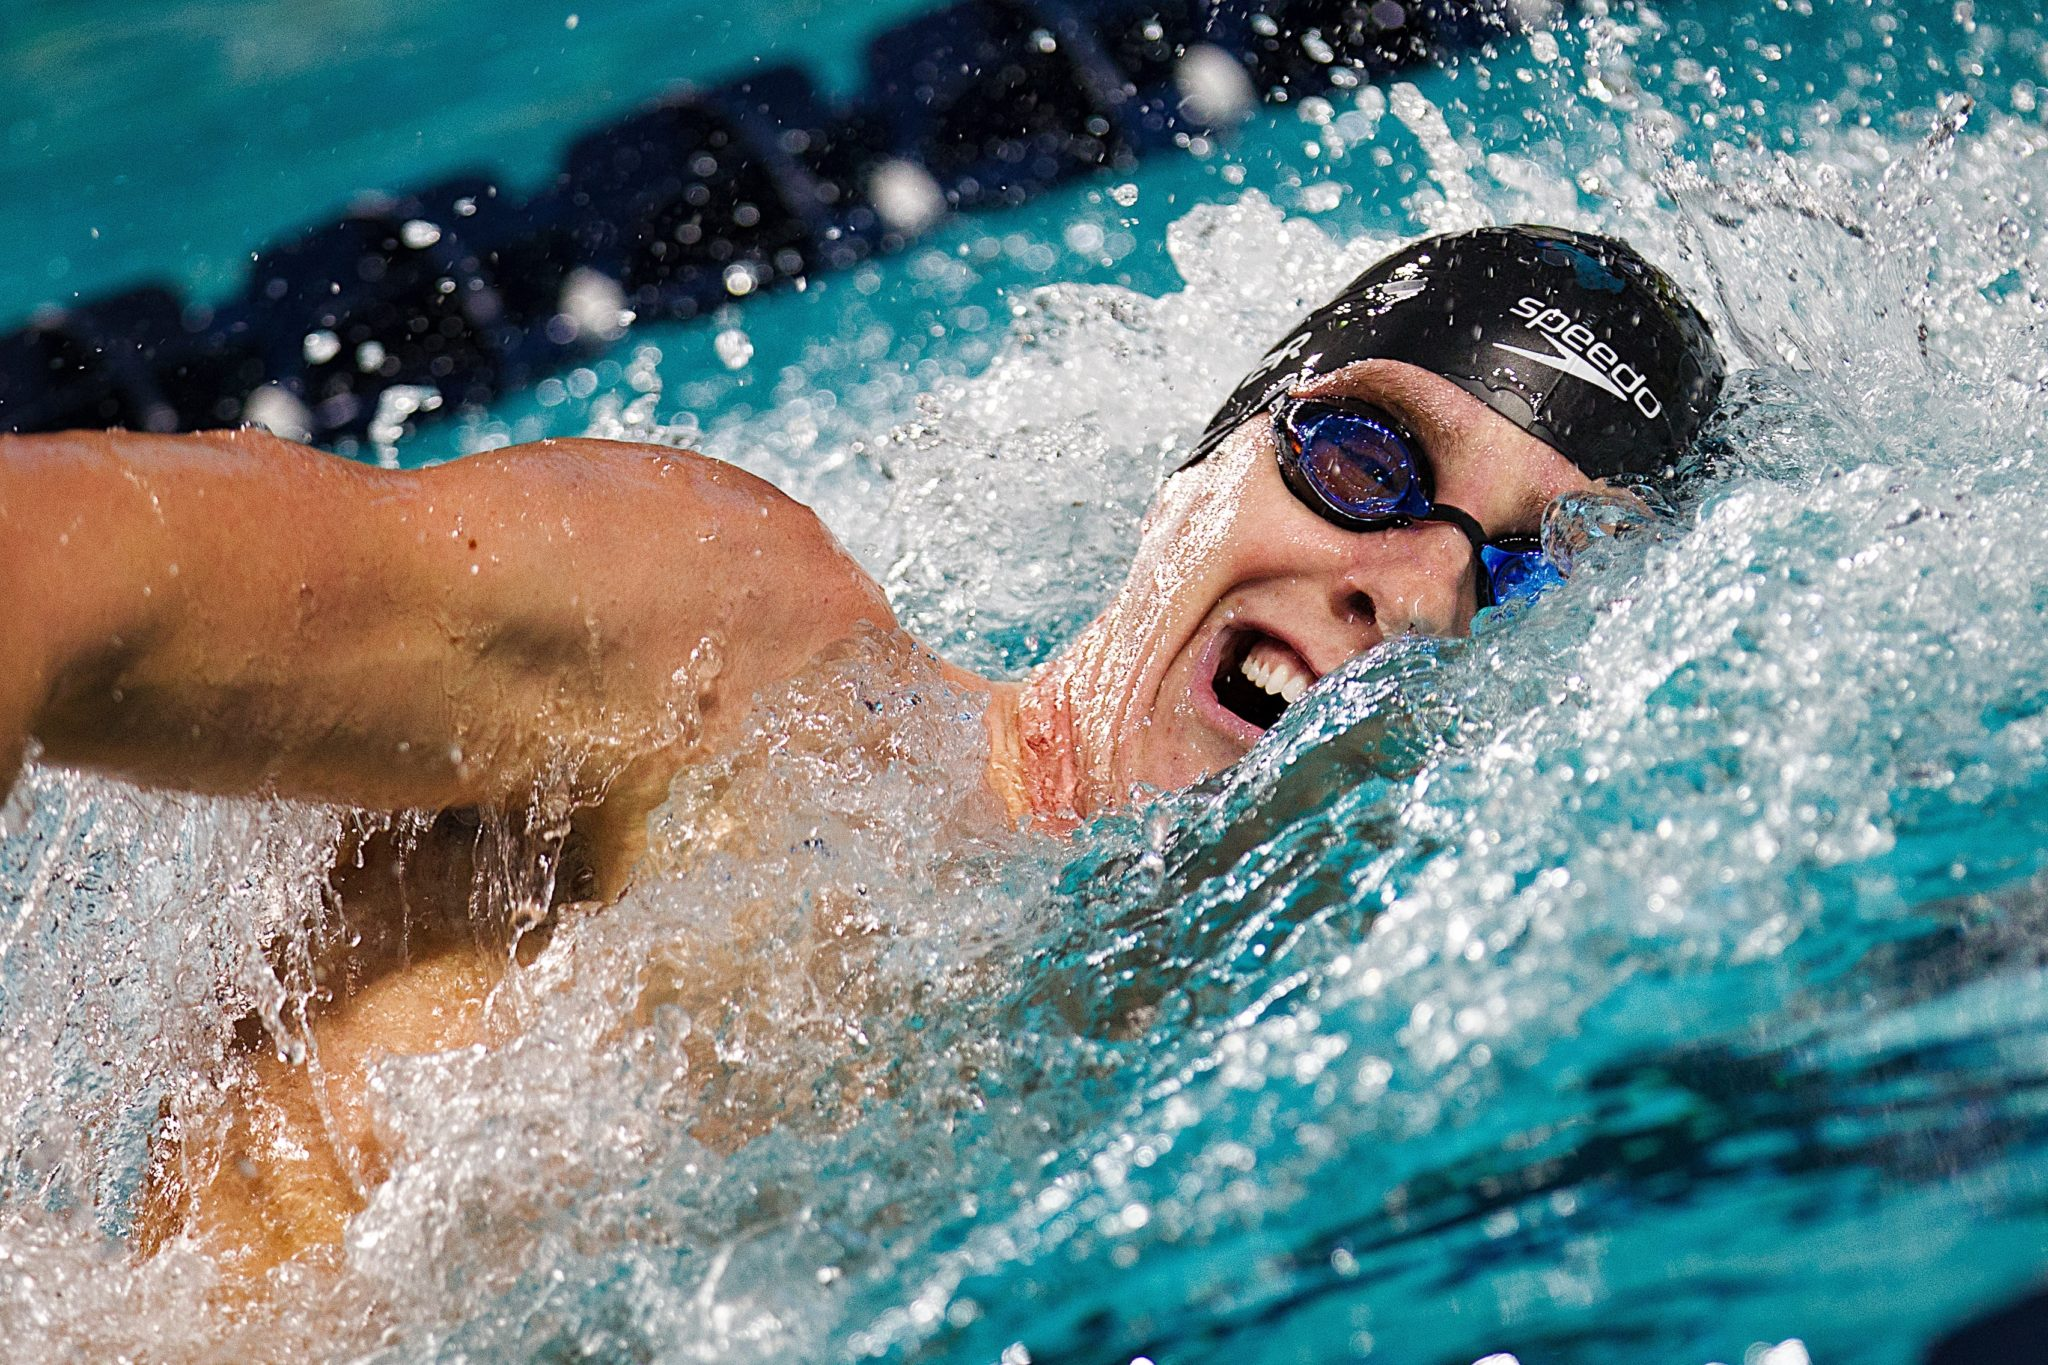 The conor dwyer swimming photo vault - Swimming pool swimming pool swimming pool ...